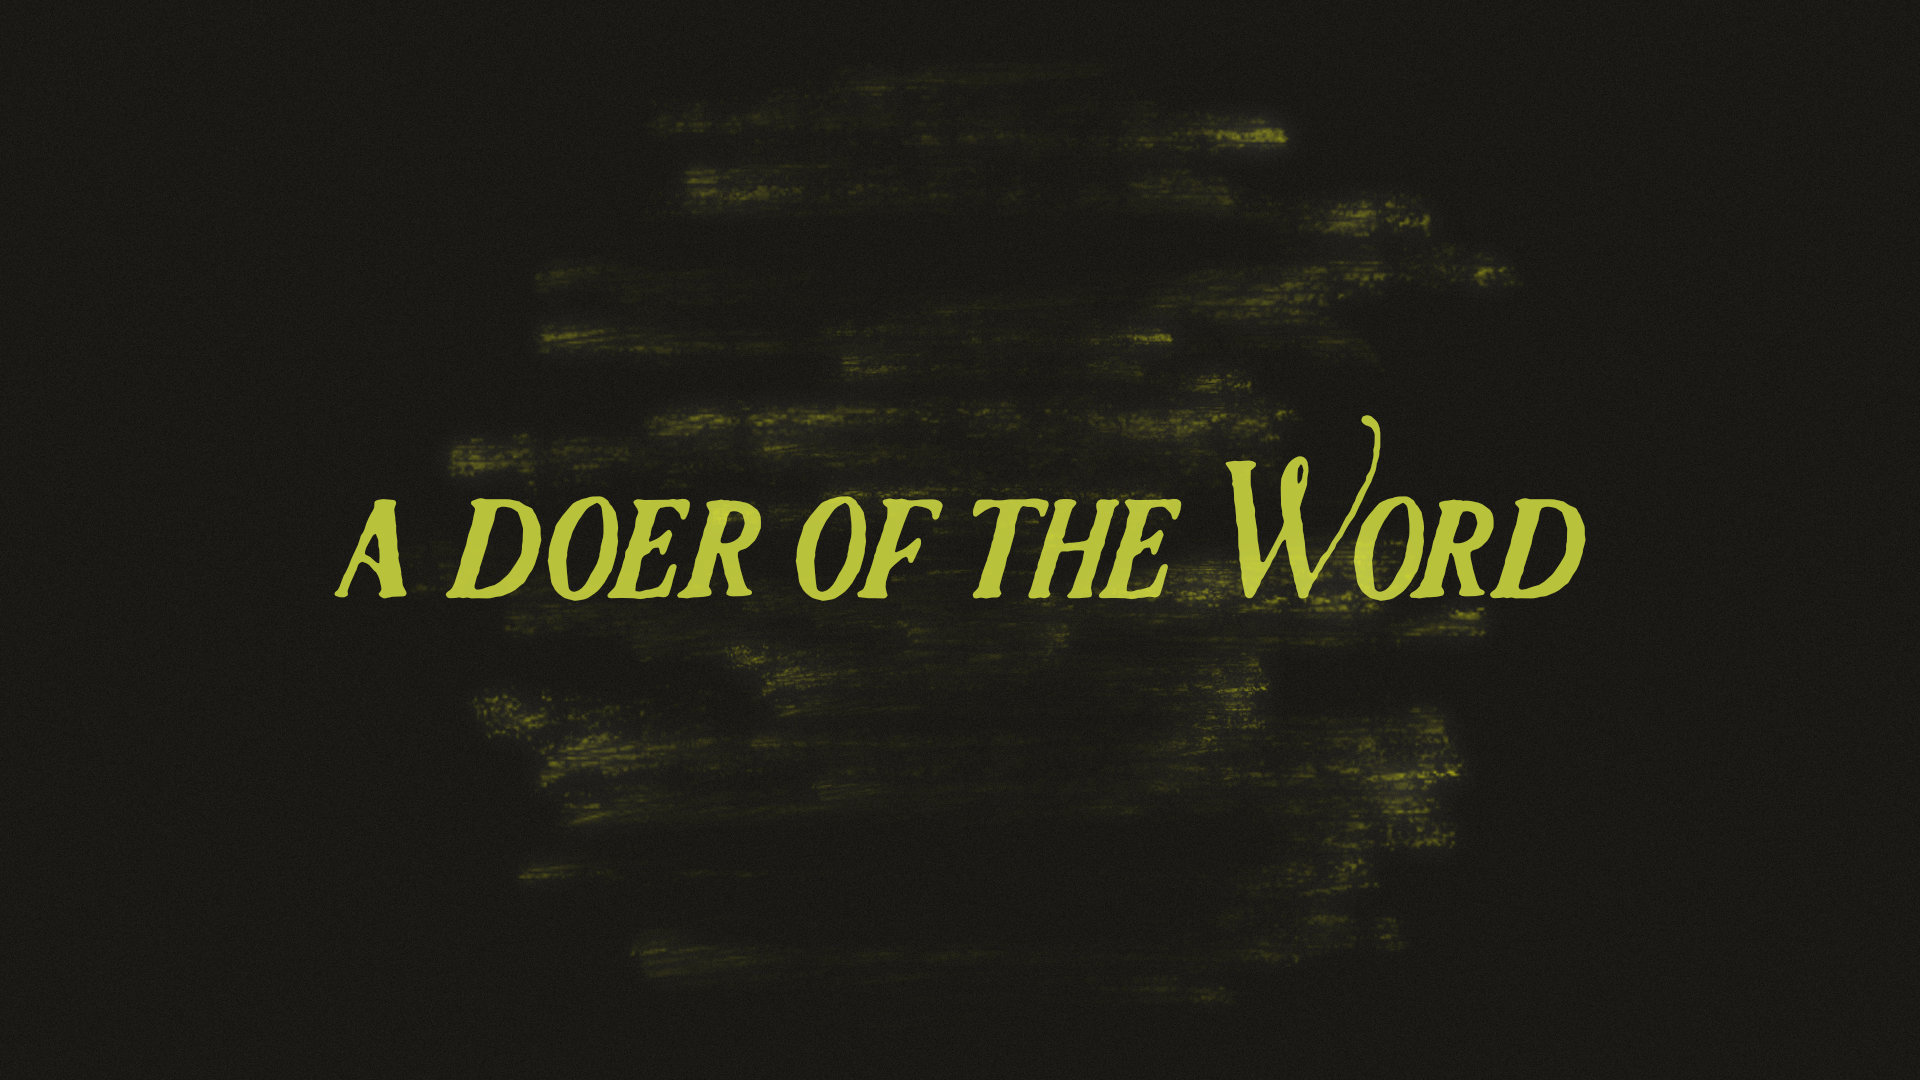 2019-06-02 A Doer of the Word.jpg